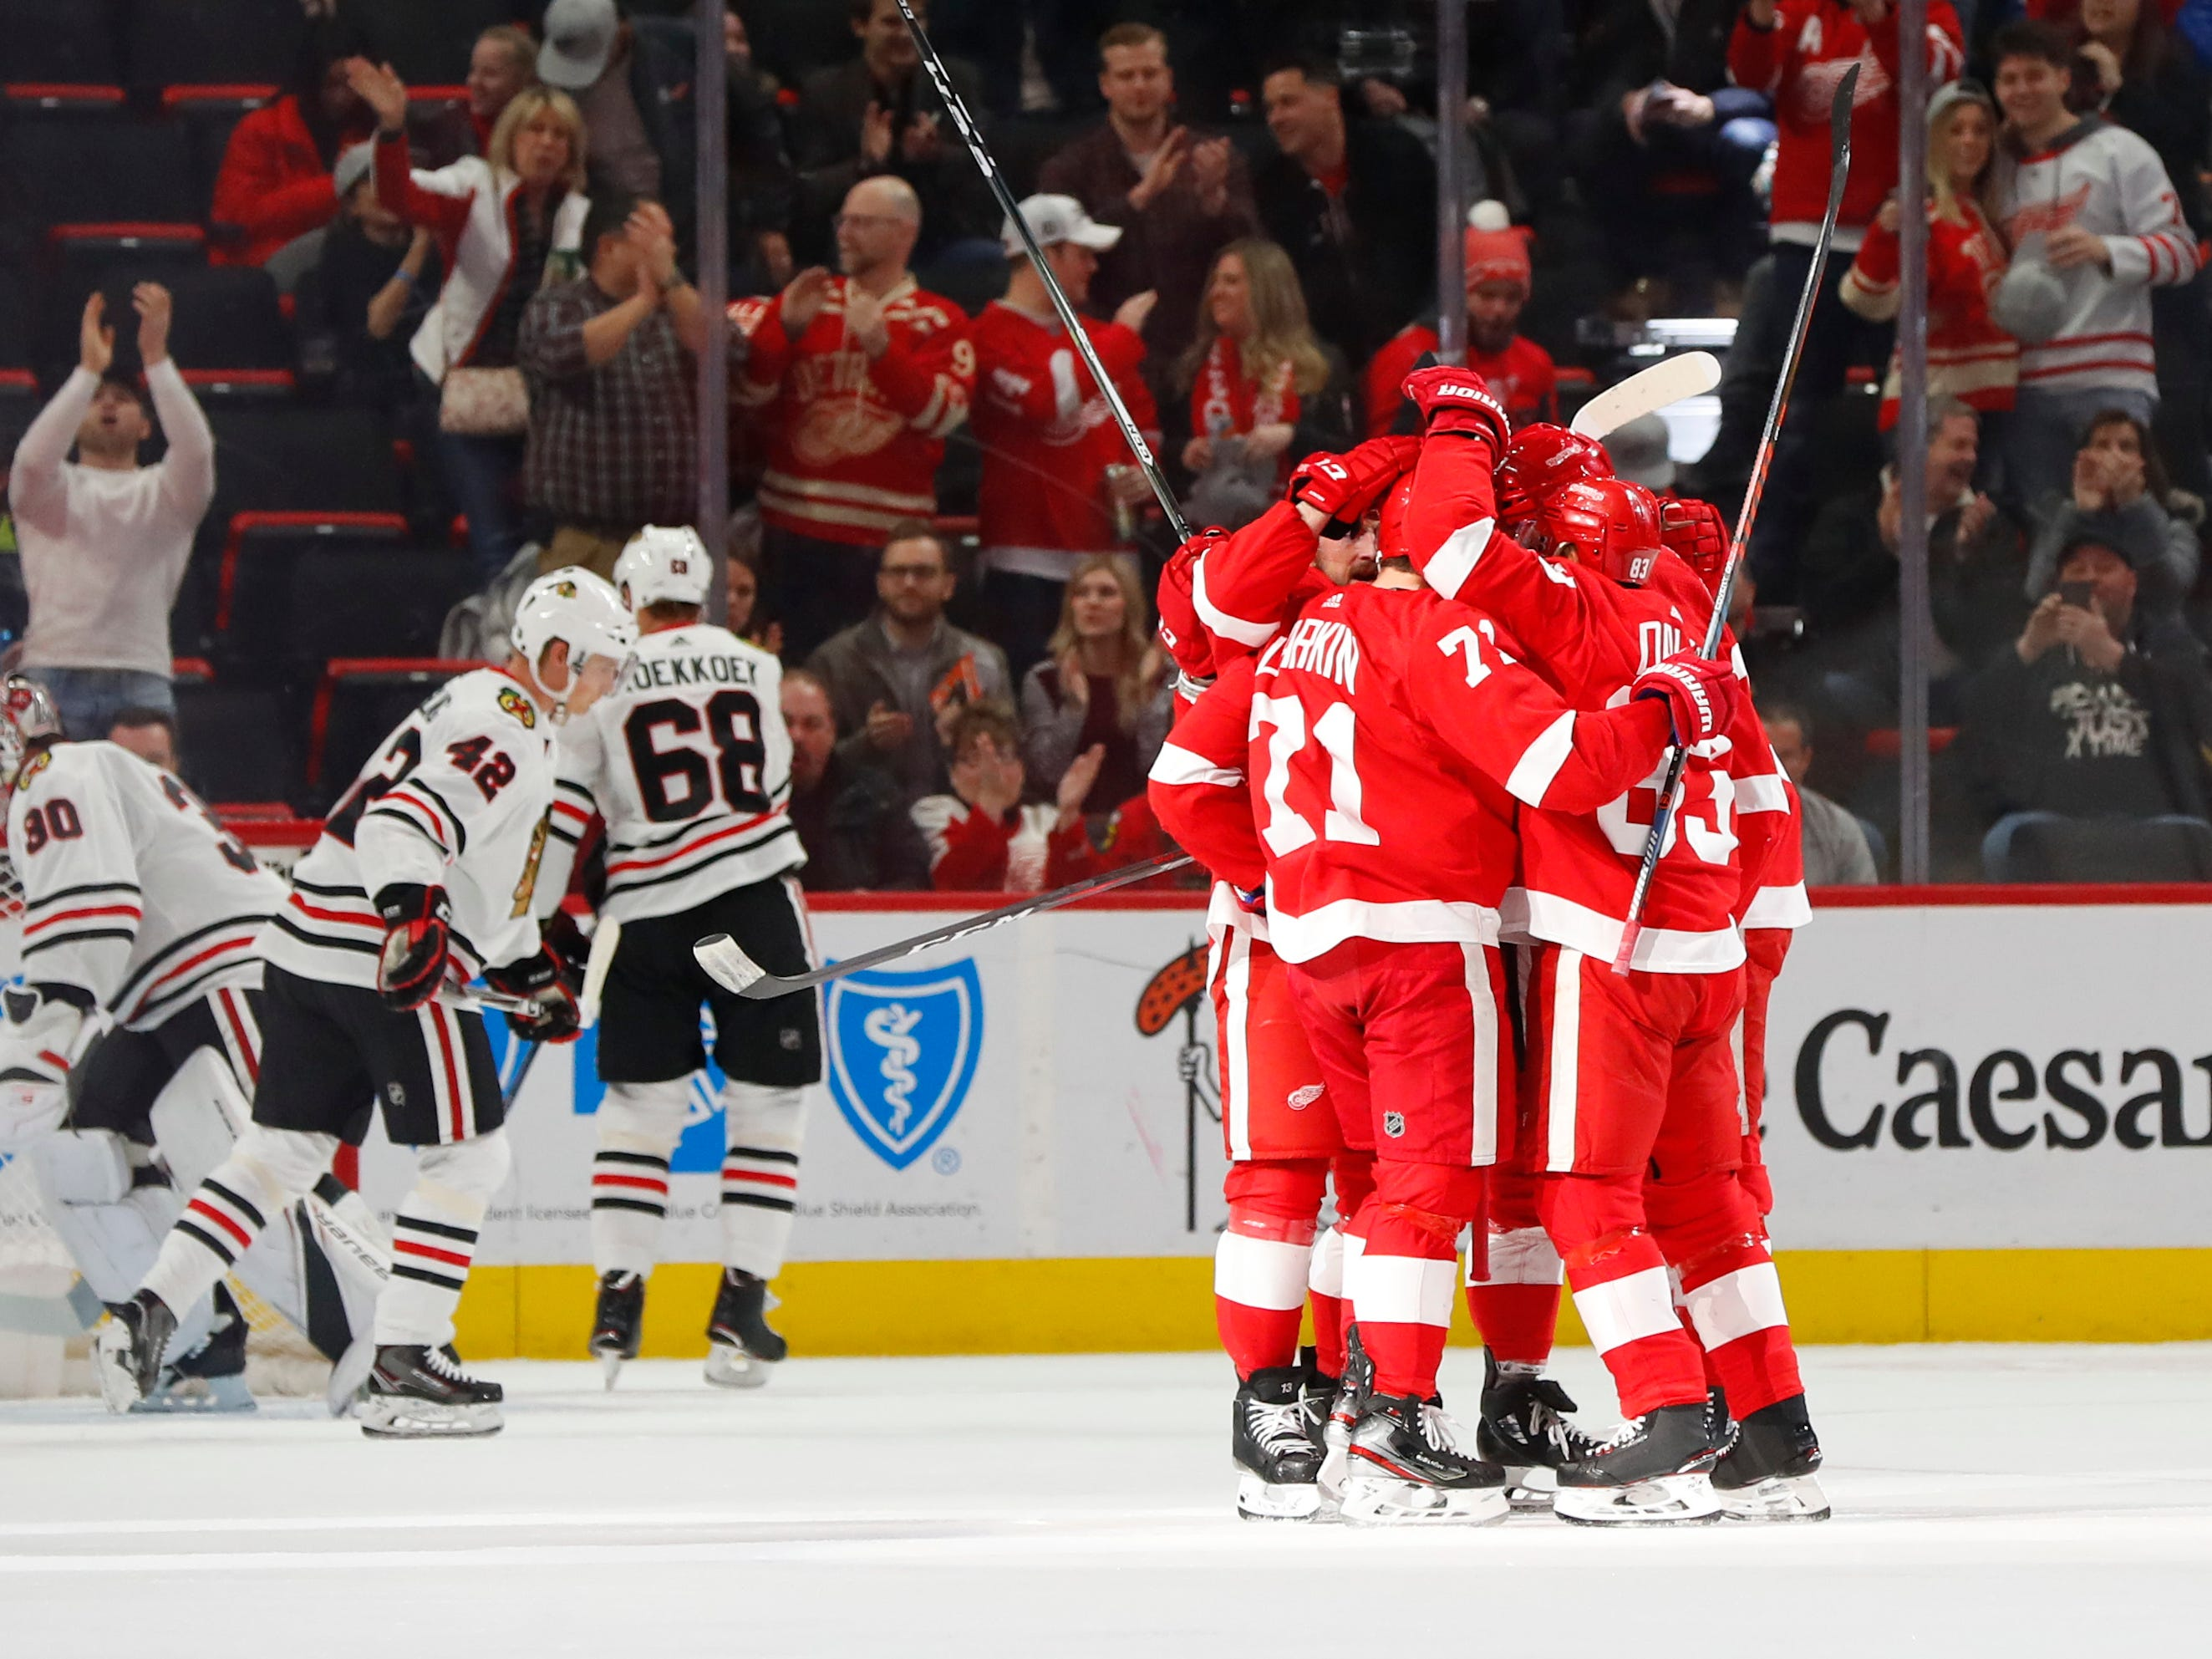 Detroit Red Wings center Dylan Larkin (71) celebrates his goal against the Chicago Blackhawks in the first period of an NHL hockey game Wednesday, Feb. 20, 2019, in Detroit.